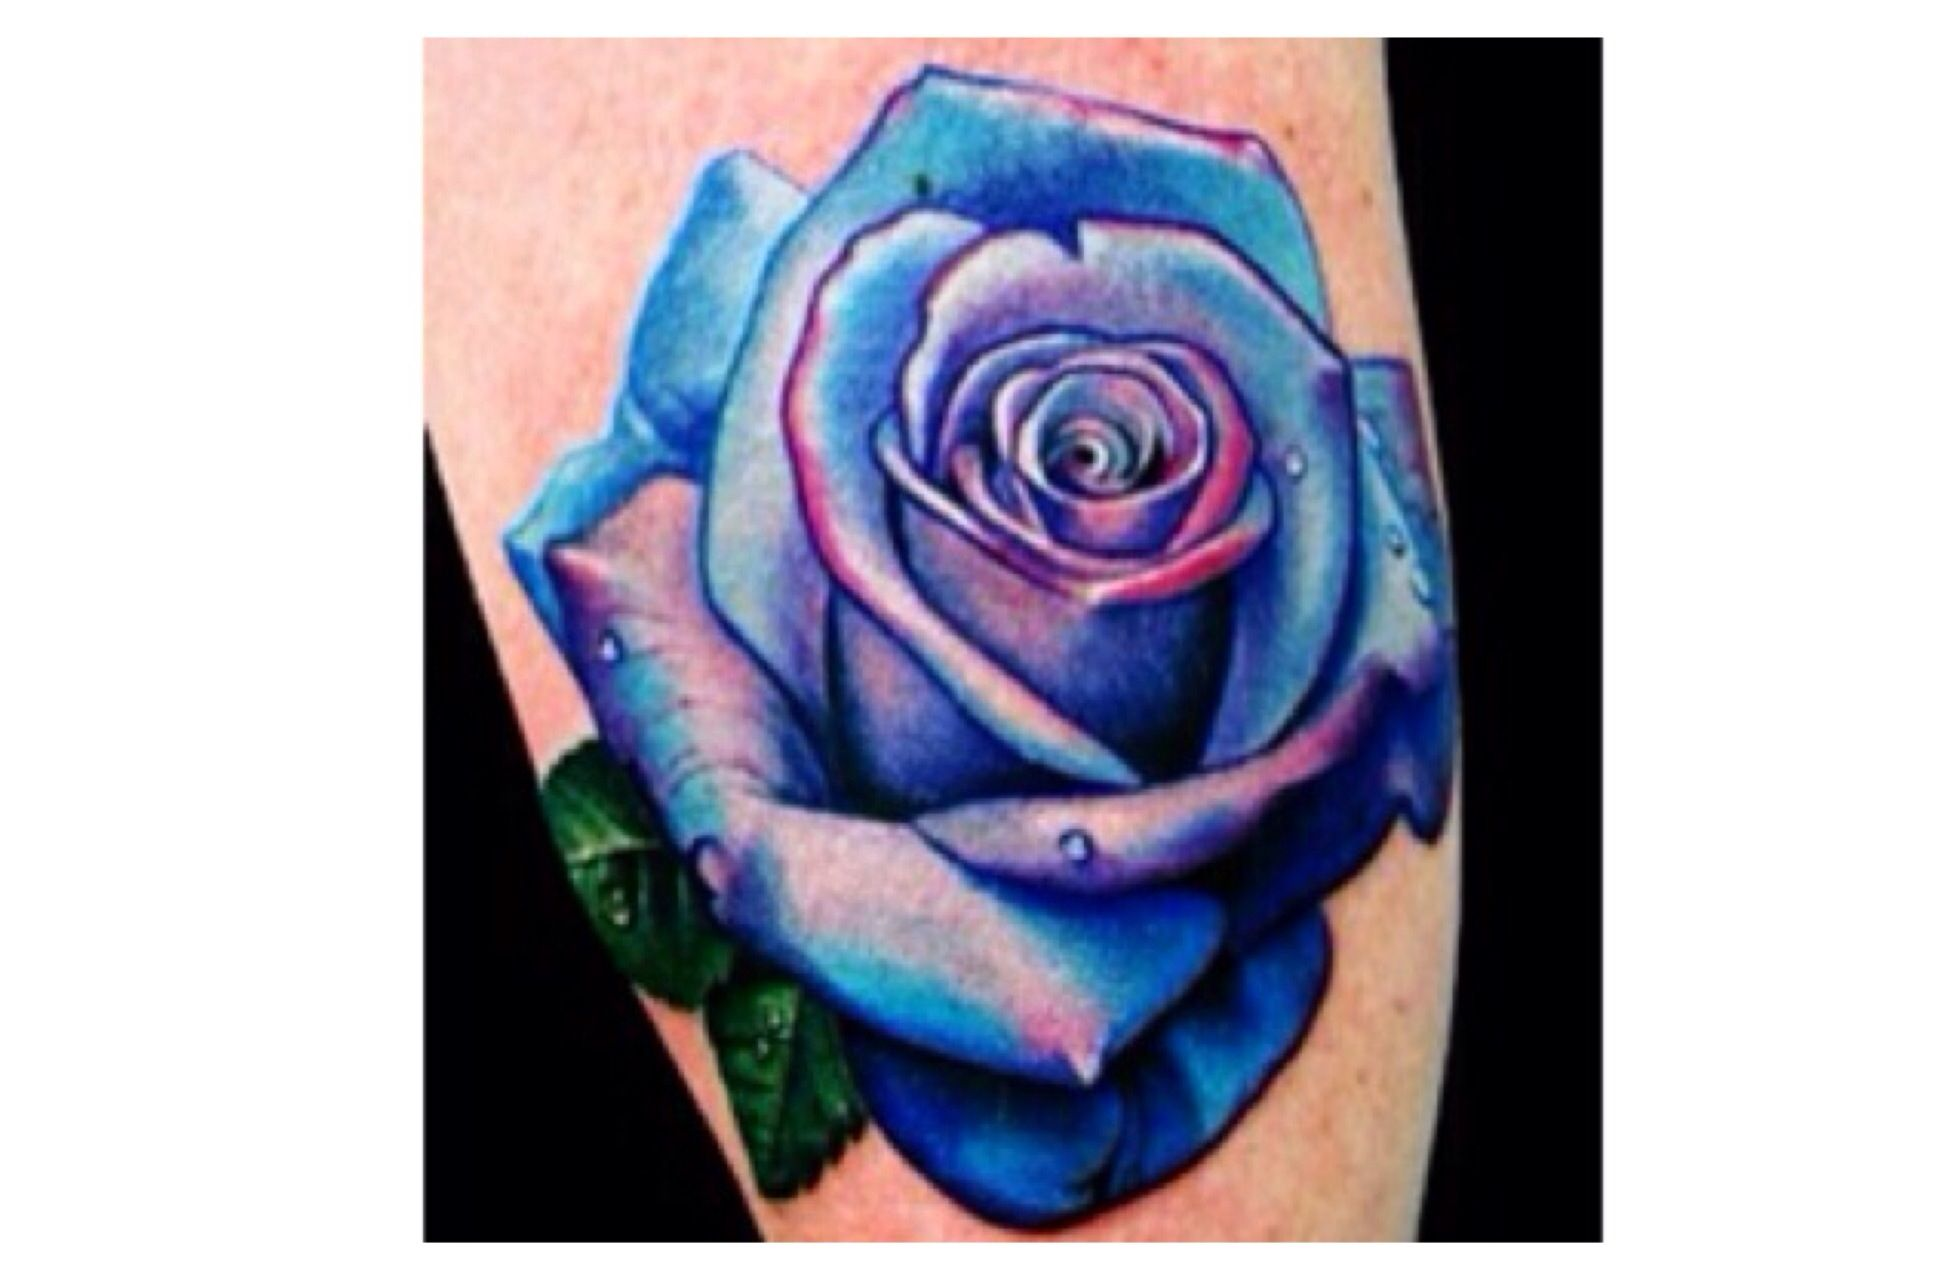 Blue And Purple Rose Tattoo My Body Is My Journal And My Tattoos Are My Story Blue Rose Tattoos Purple Rose Tattoos Pink Rose Tattoos